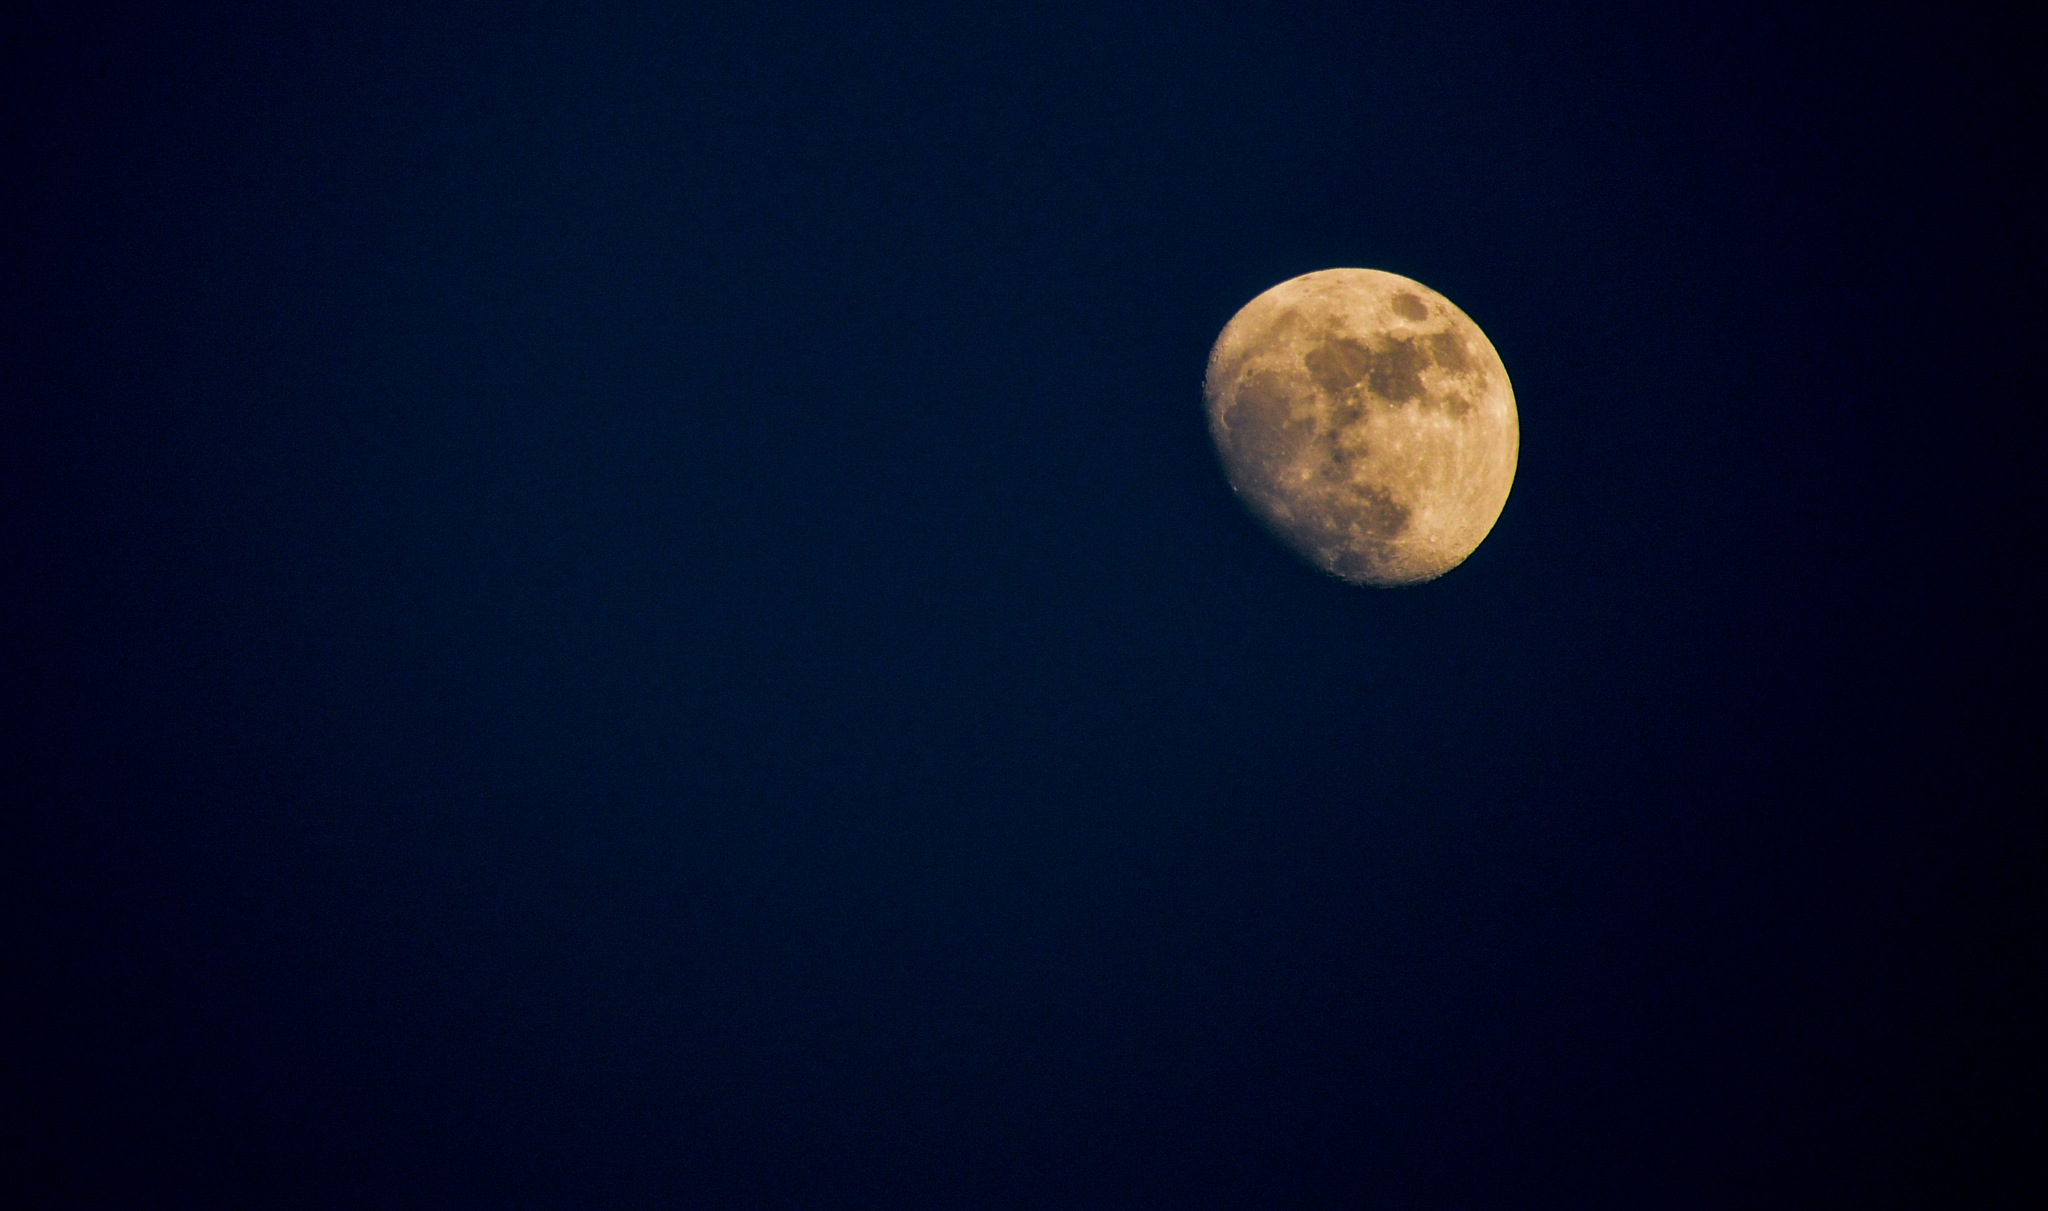 The Moon  by Ismailbenmouhani